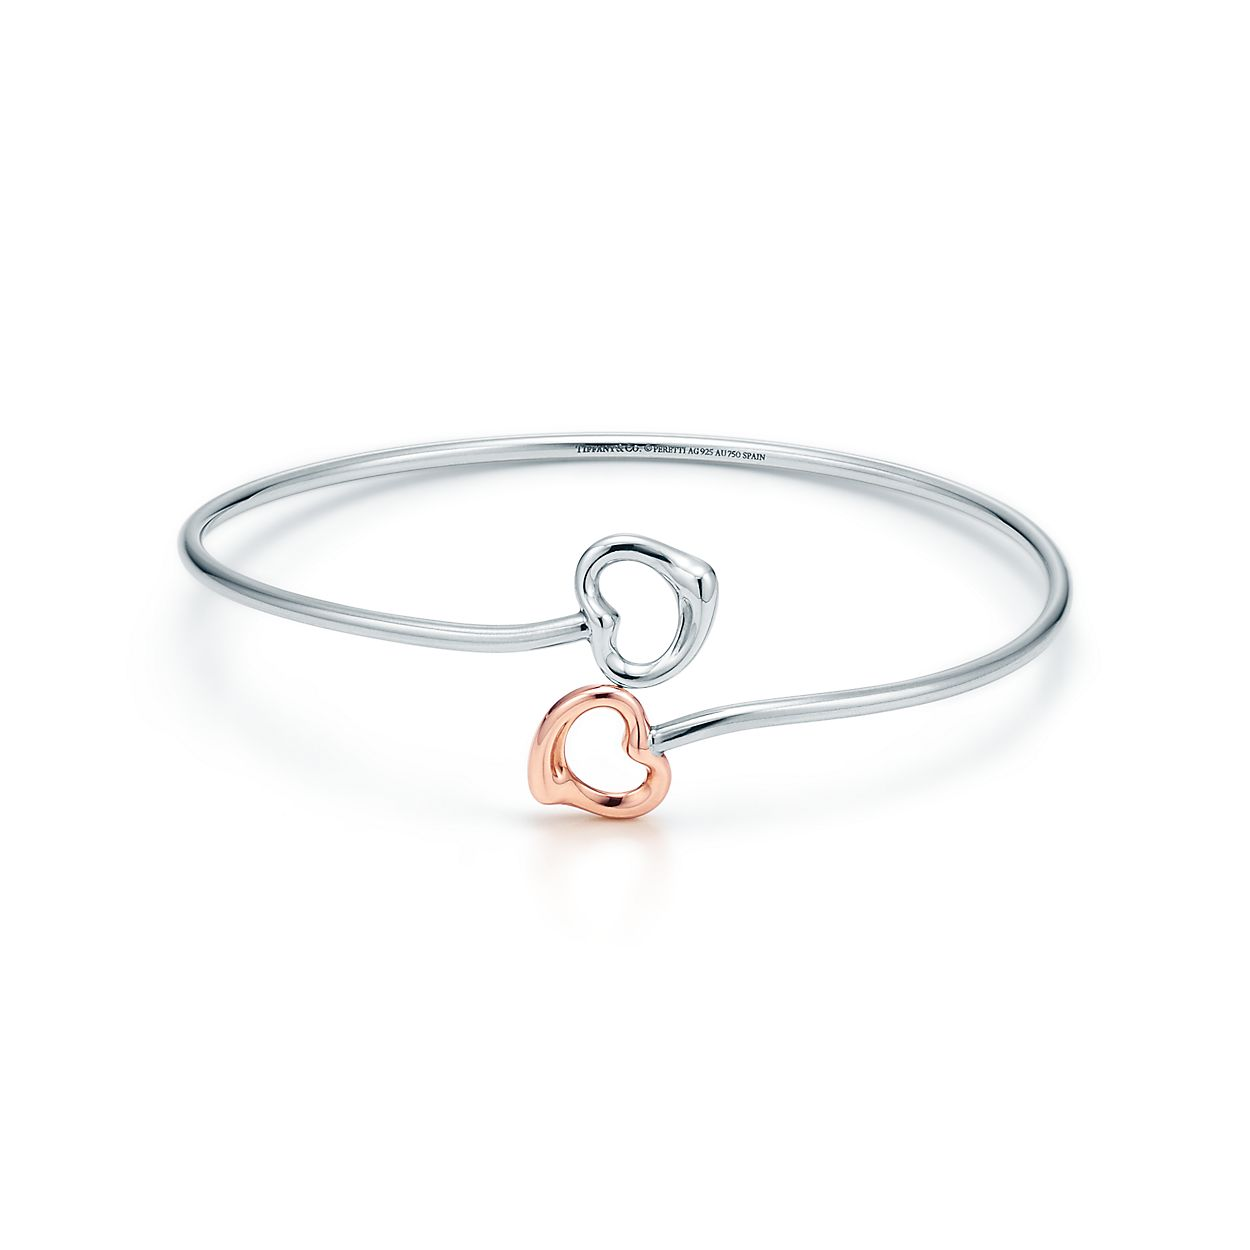 Elsa Peretti® Double Open Heart bangle in silver and 18k rose gold ... febfb512429d